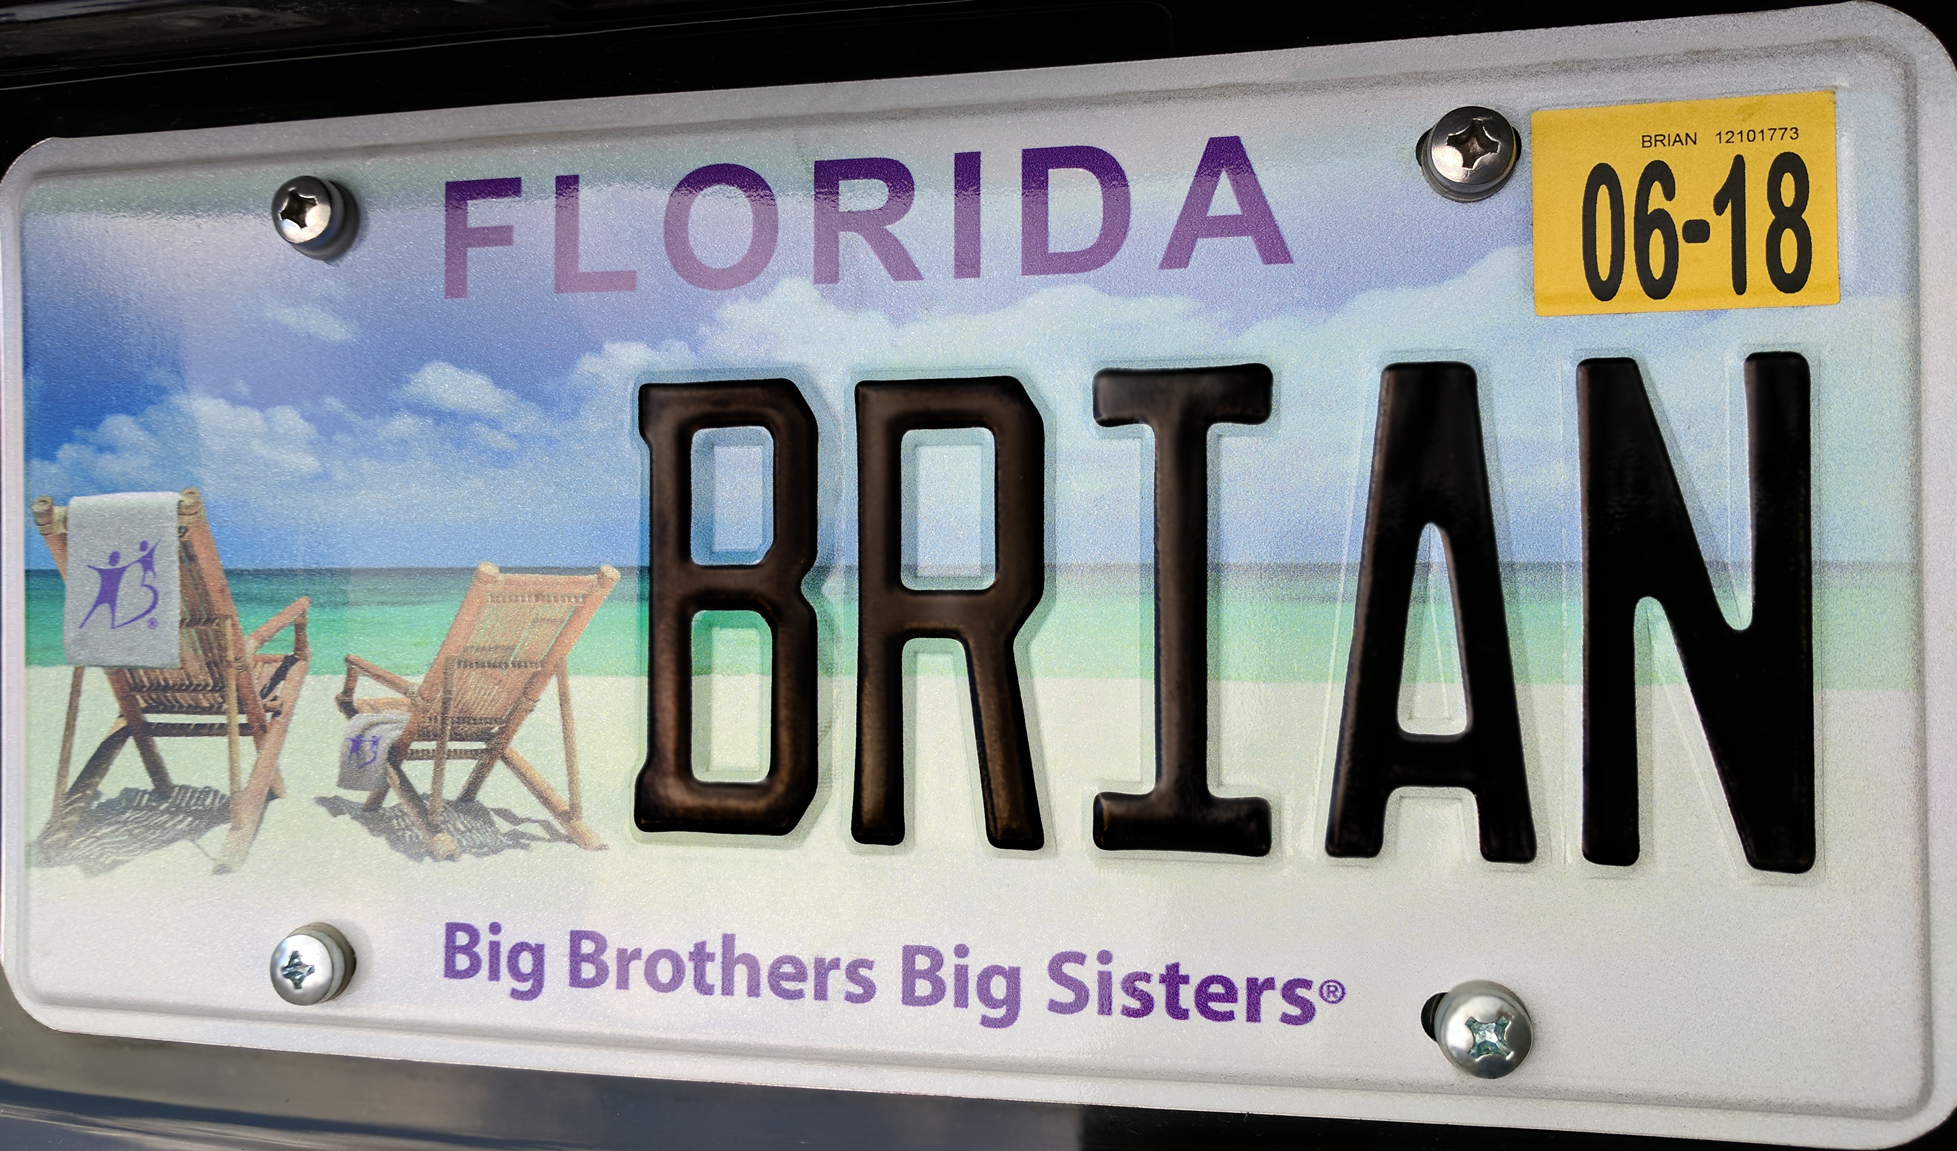 Florida Big Brothers Big Sisters license plate